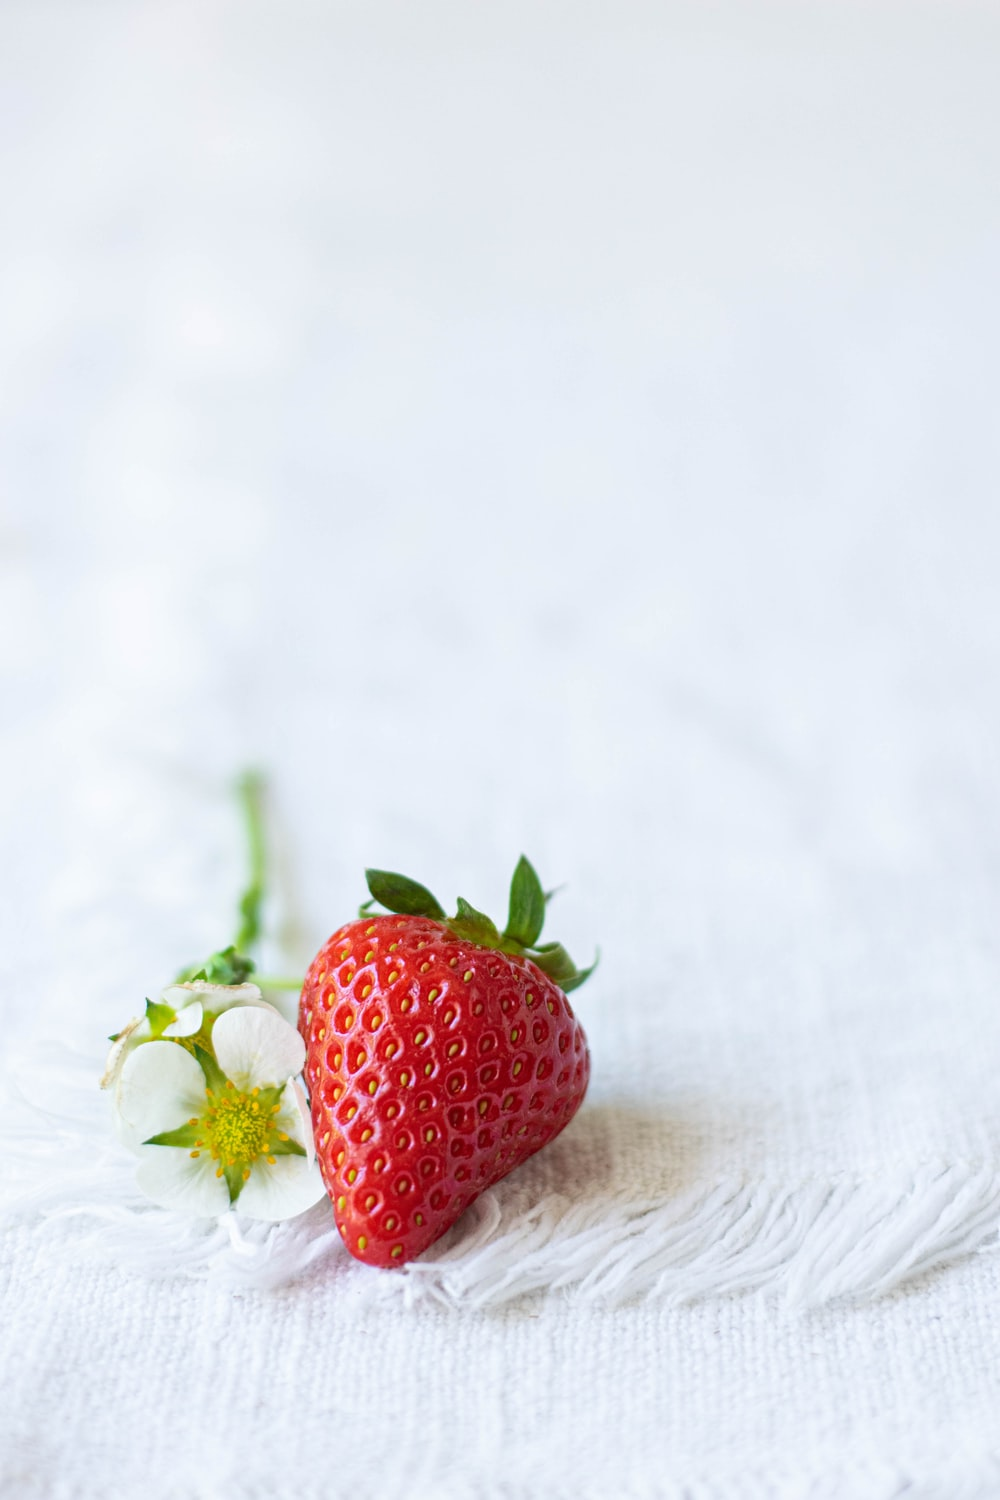 red strawberry on white textile